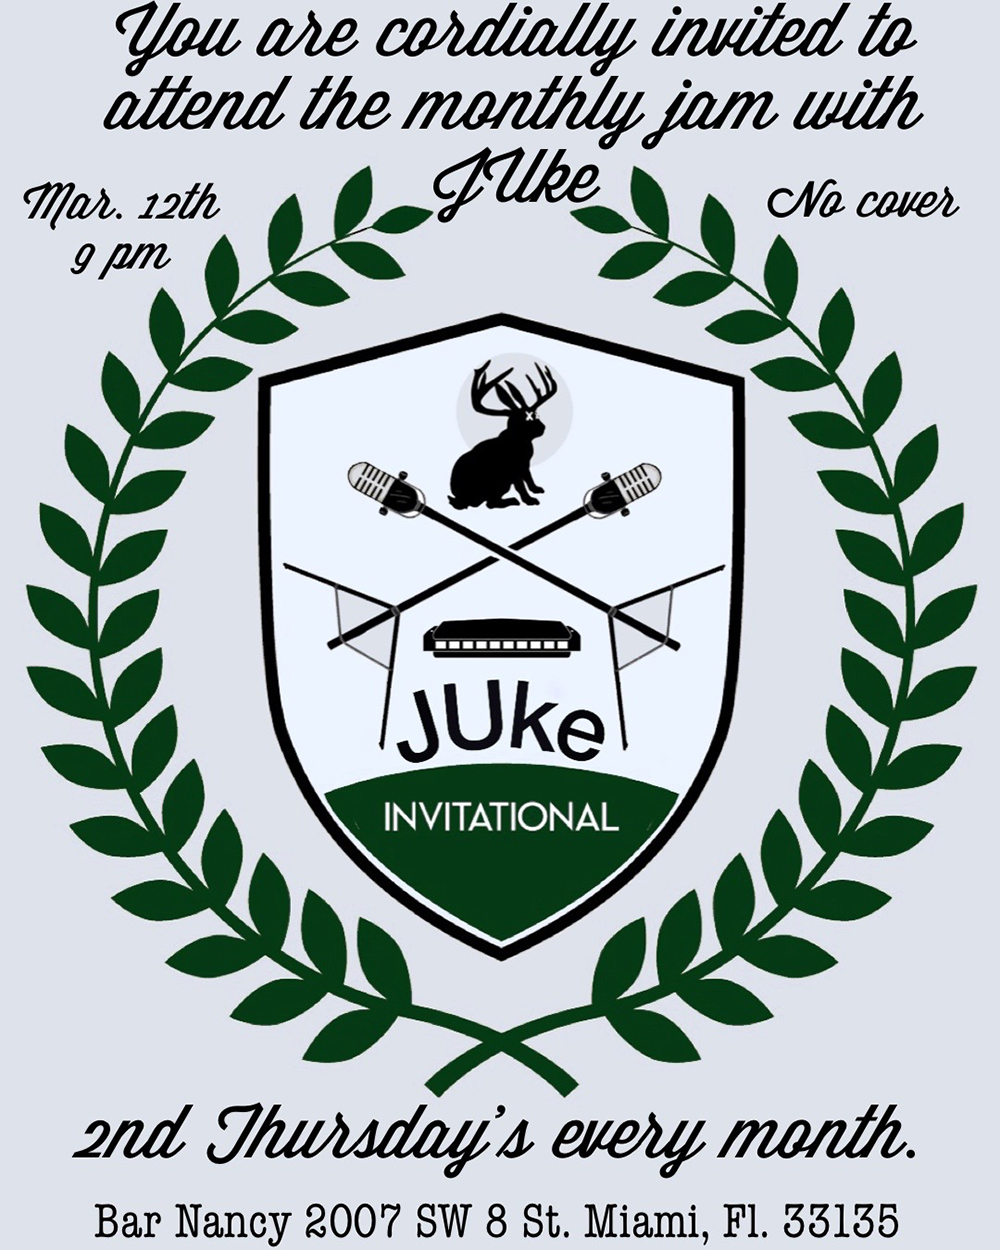 The JUke Invitational! 2nd Thursday's Every Month!